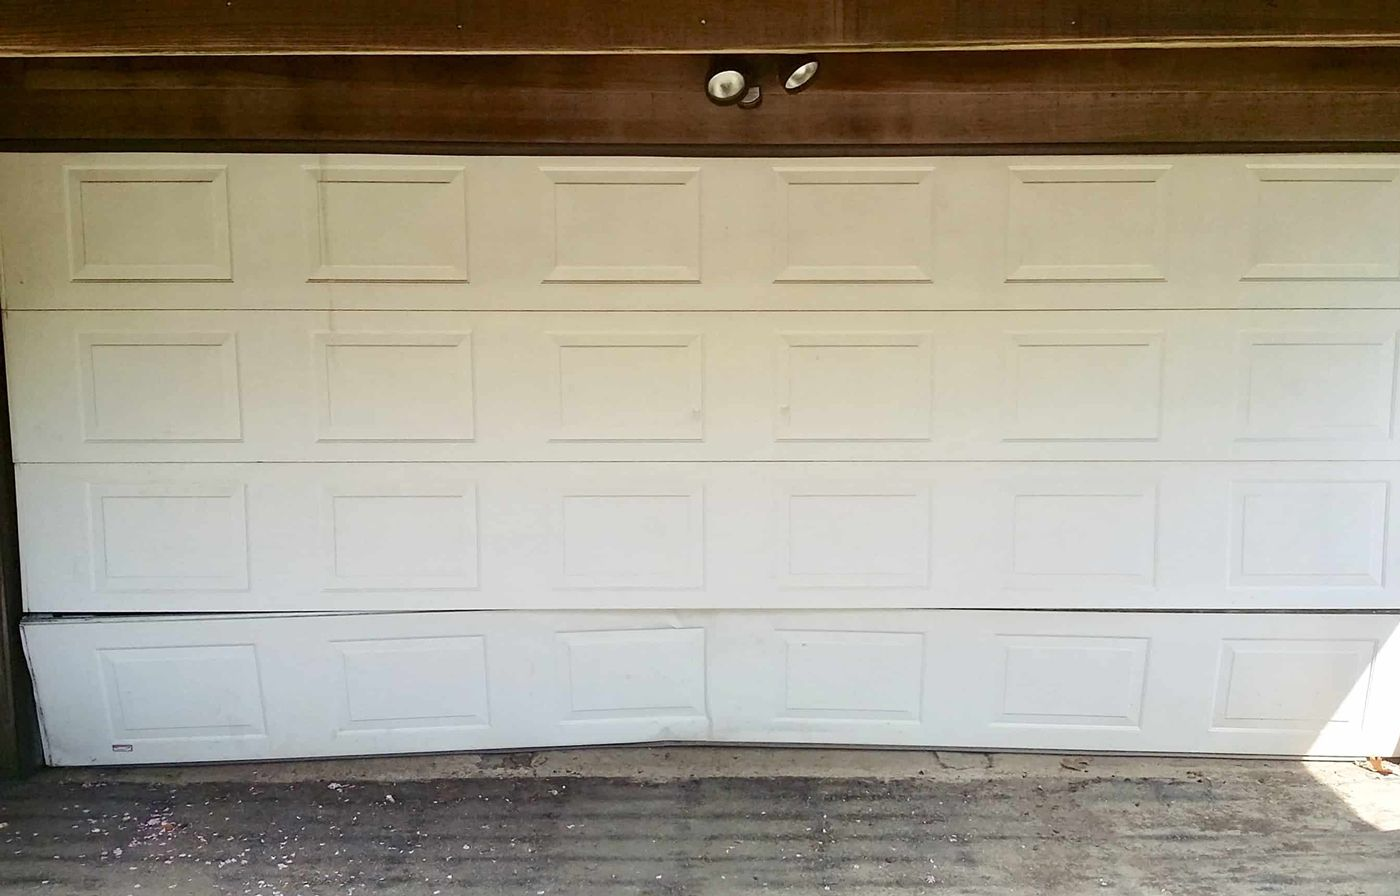 How to prevent issues with your garage door?